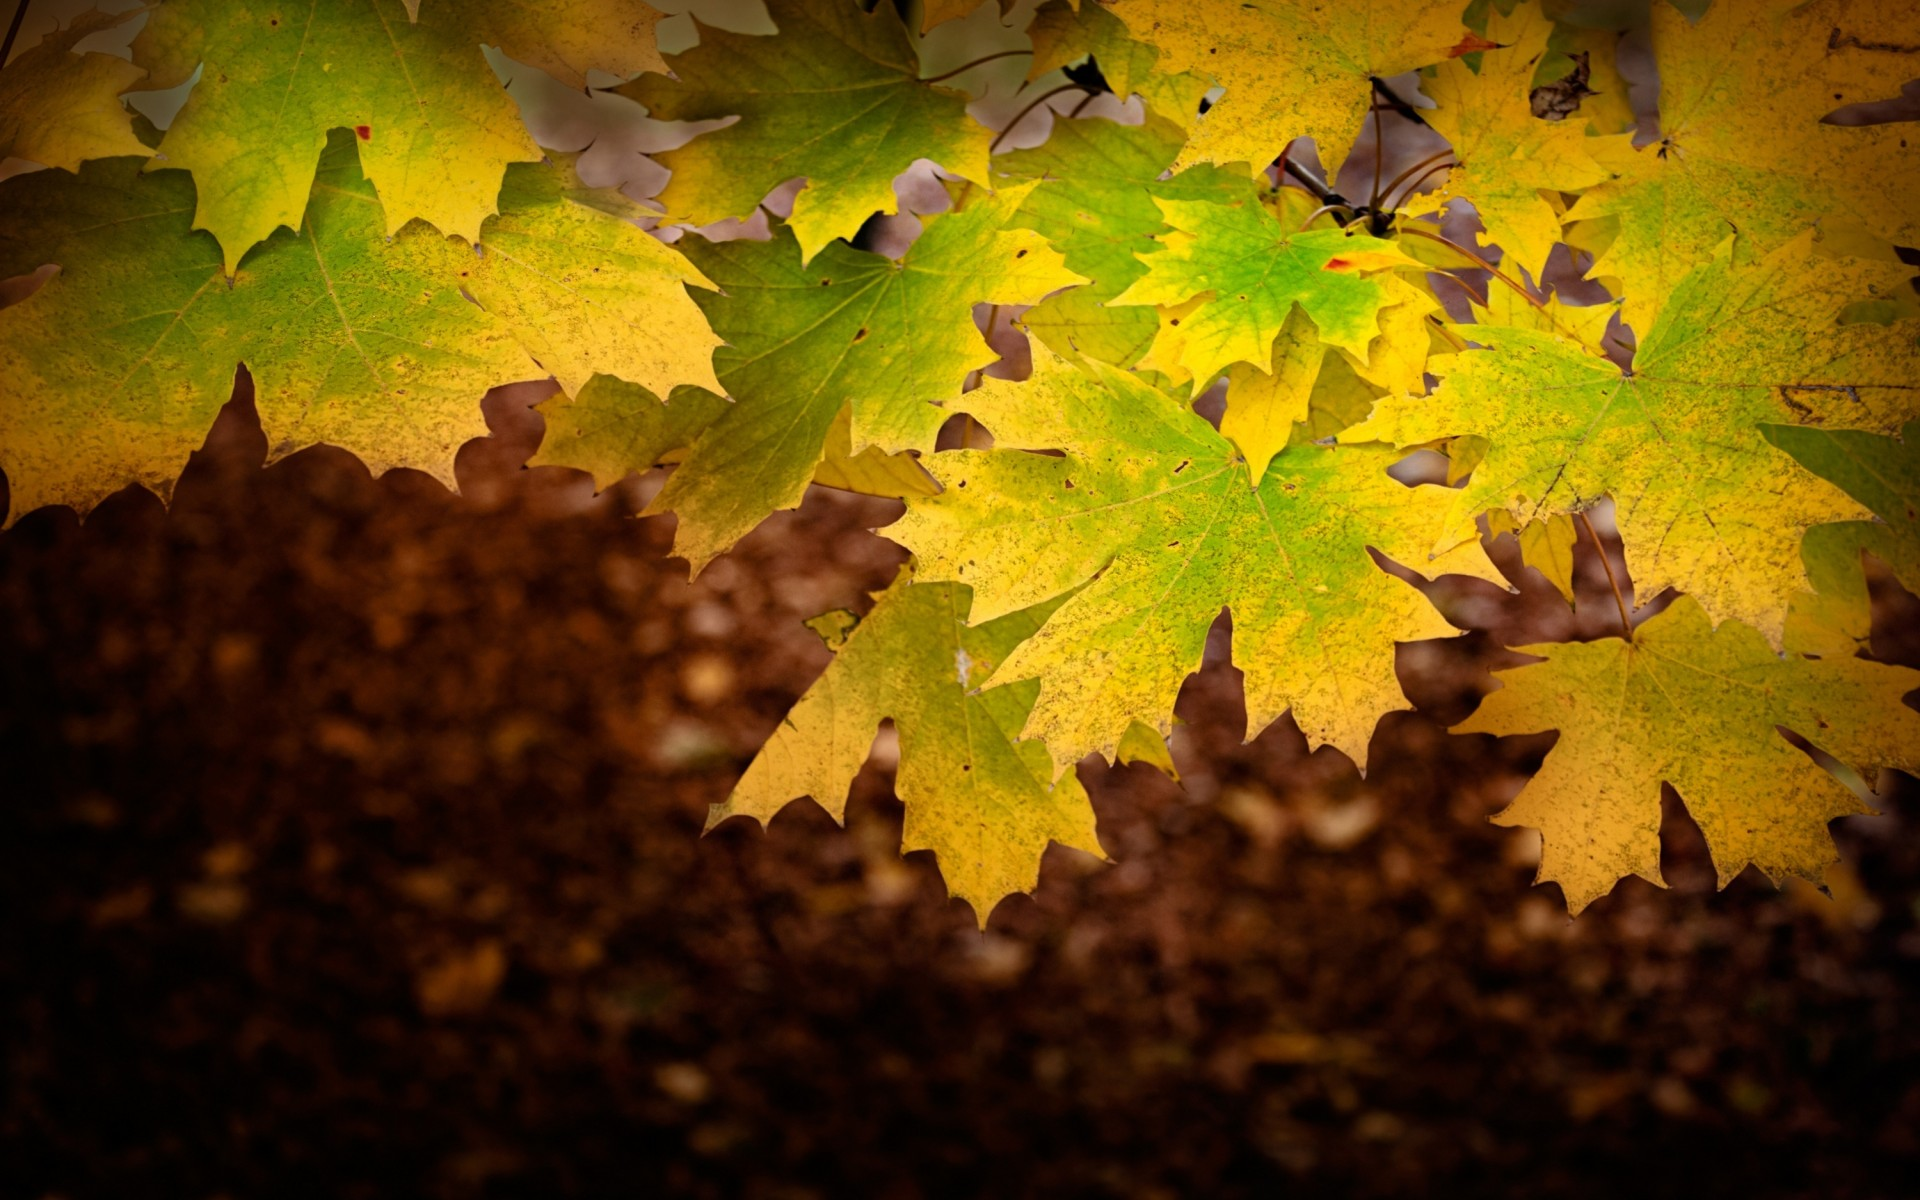 Desktop wallpaper autunno 2014 for Desktop autunno